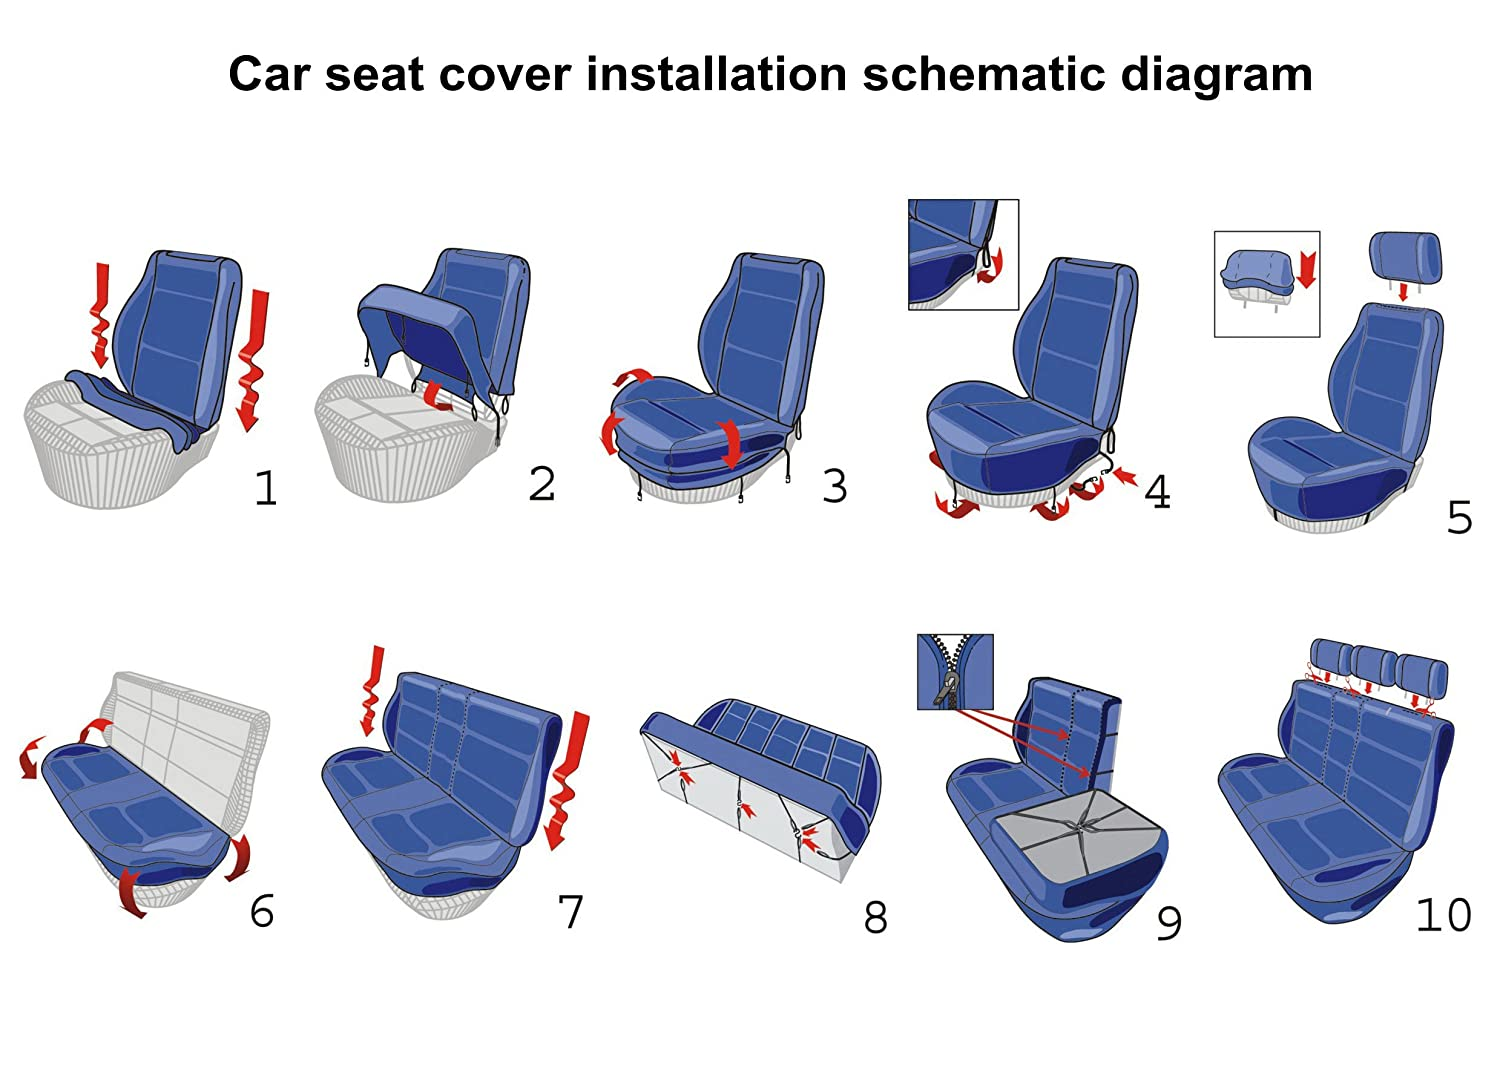 Autoyouth Classic Front Bucket Seat Covers For Car Truck Suv Airbag Schematic Fabric Diagram Polyester Two Tone Colors Accessories Universal Fit Protectors 4pcs